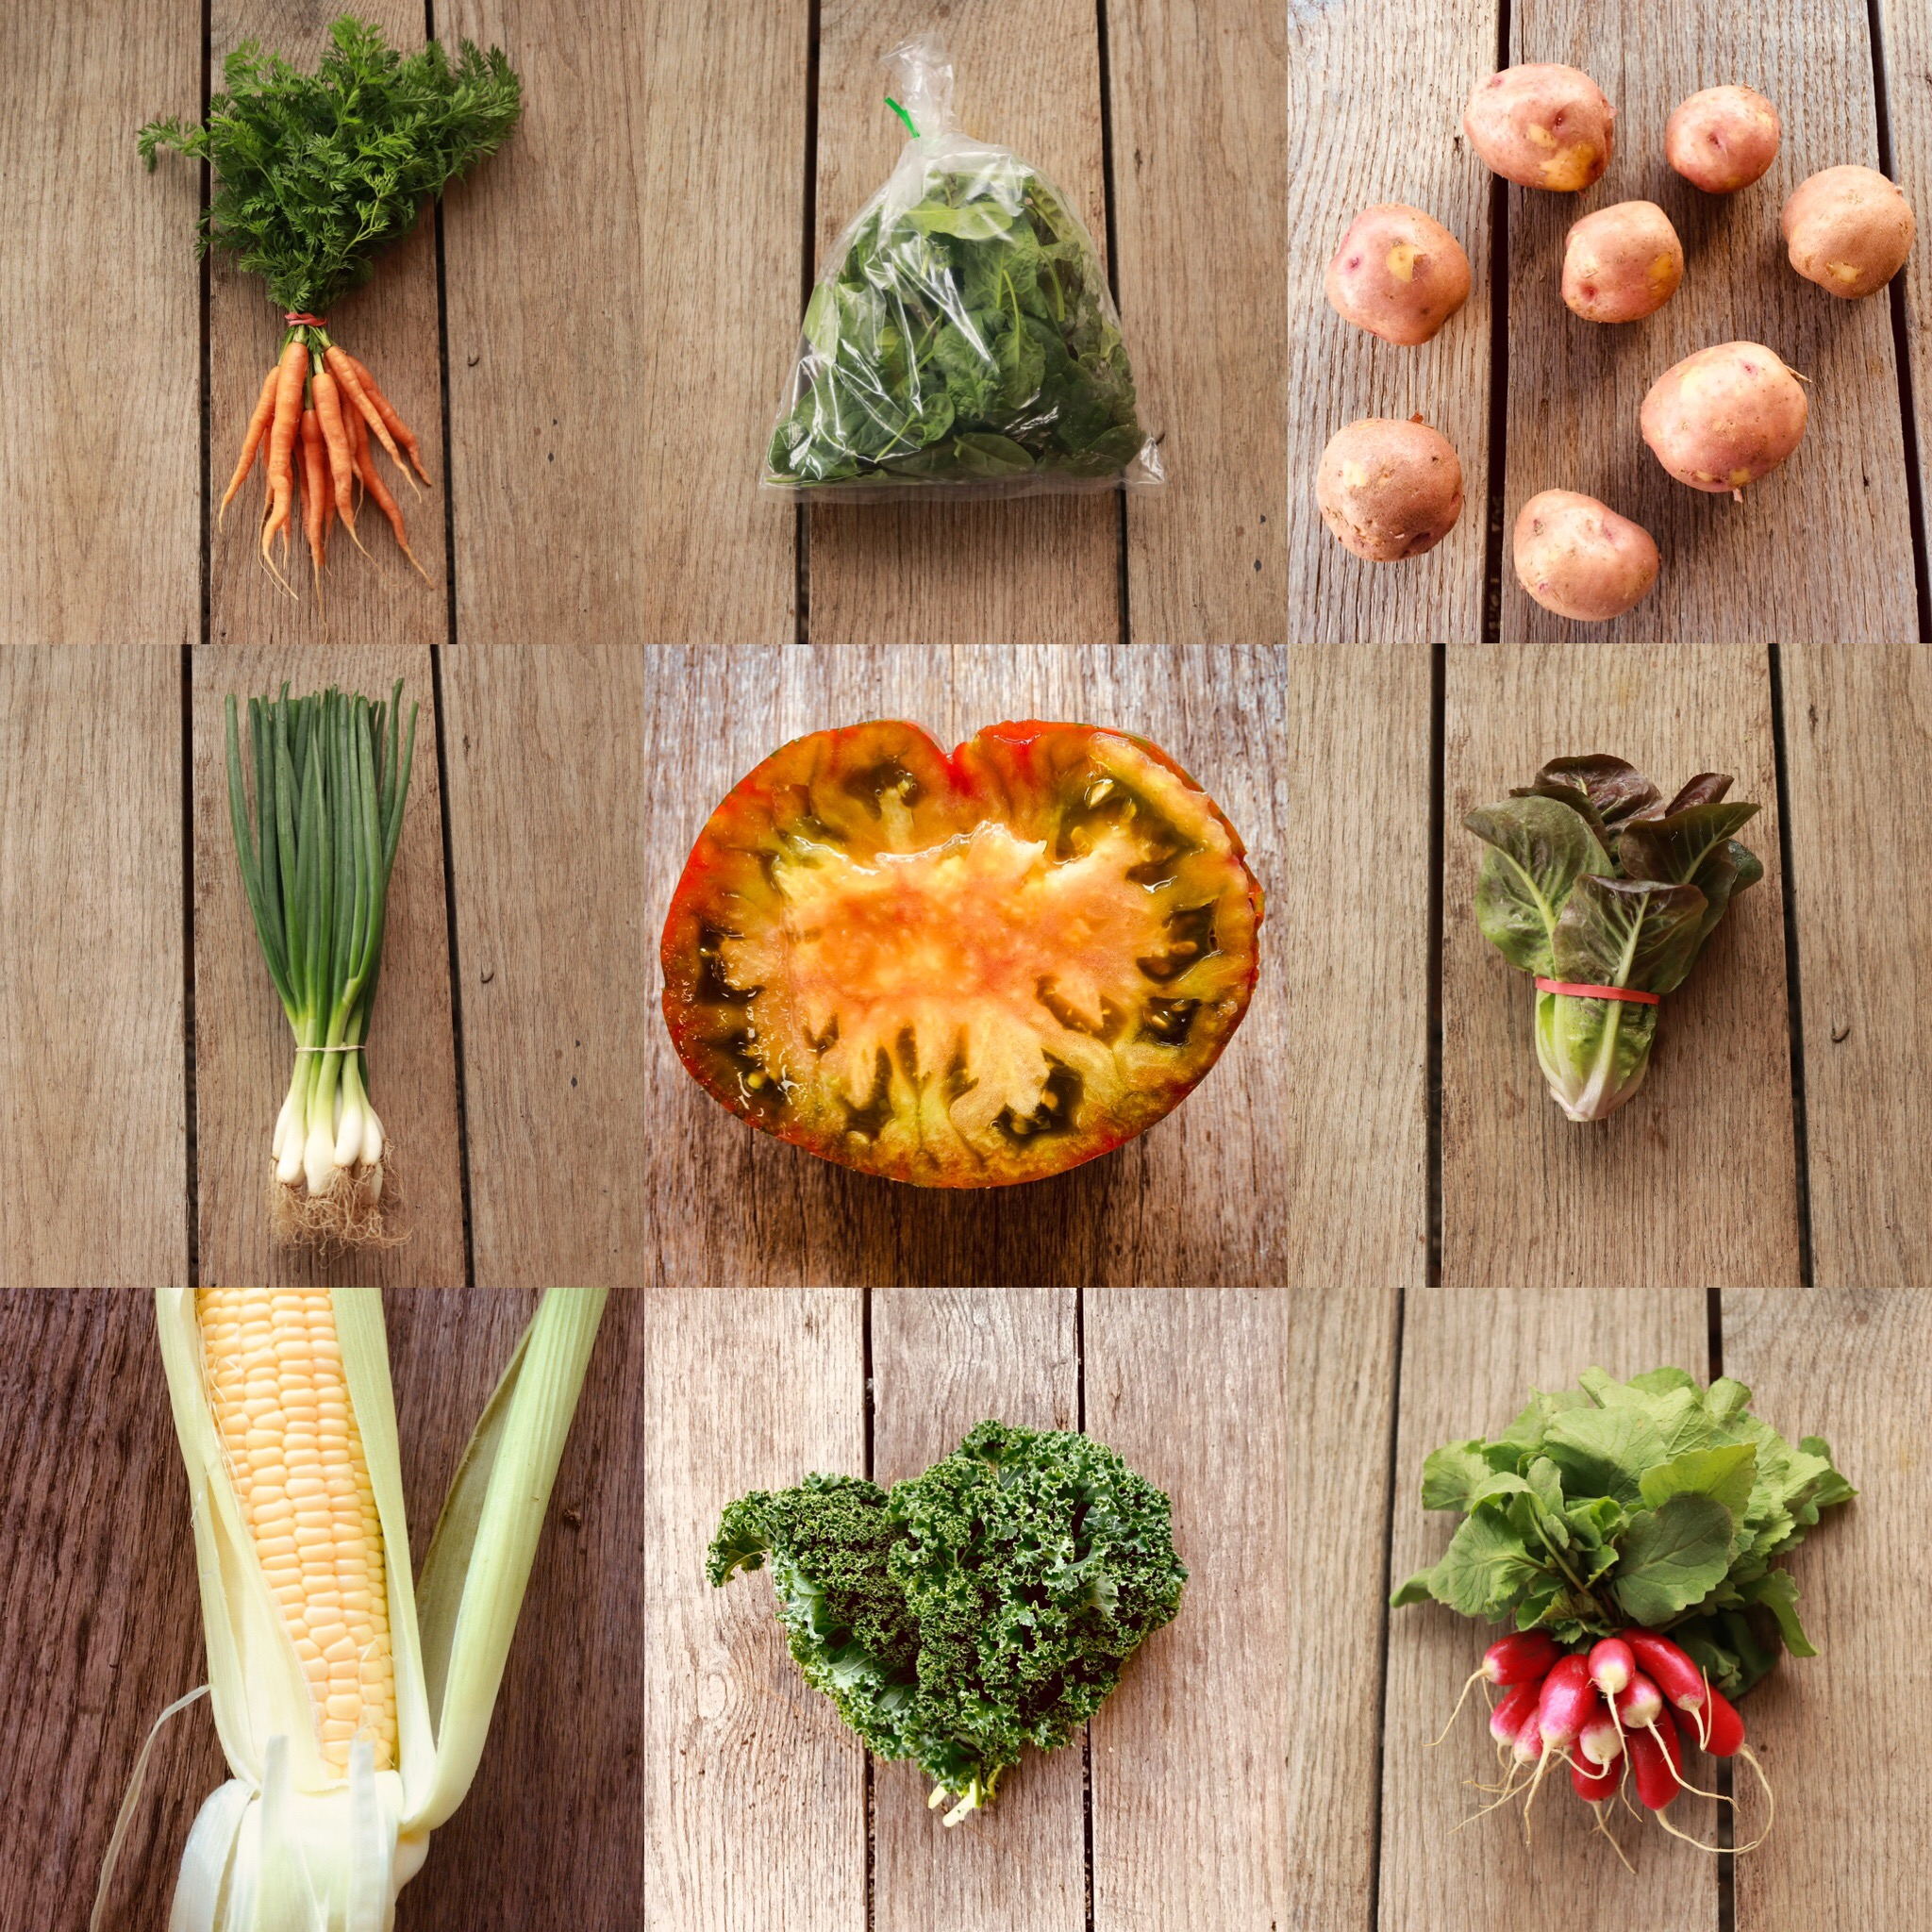 Summer Vegetable Share